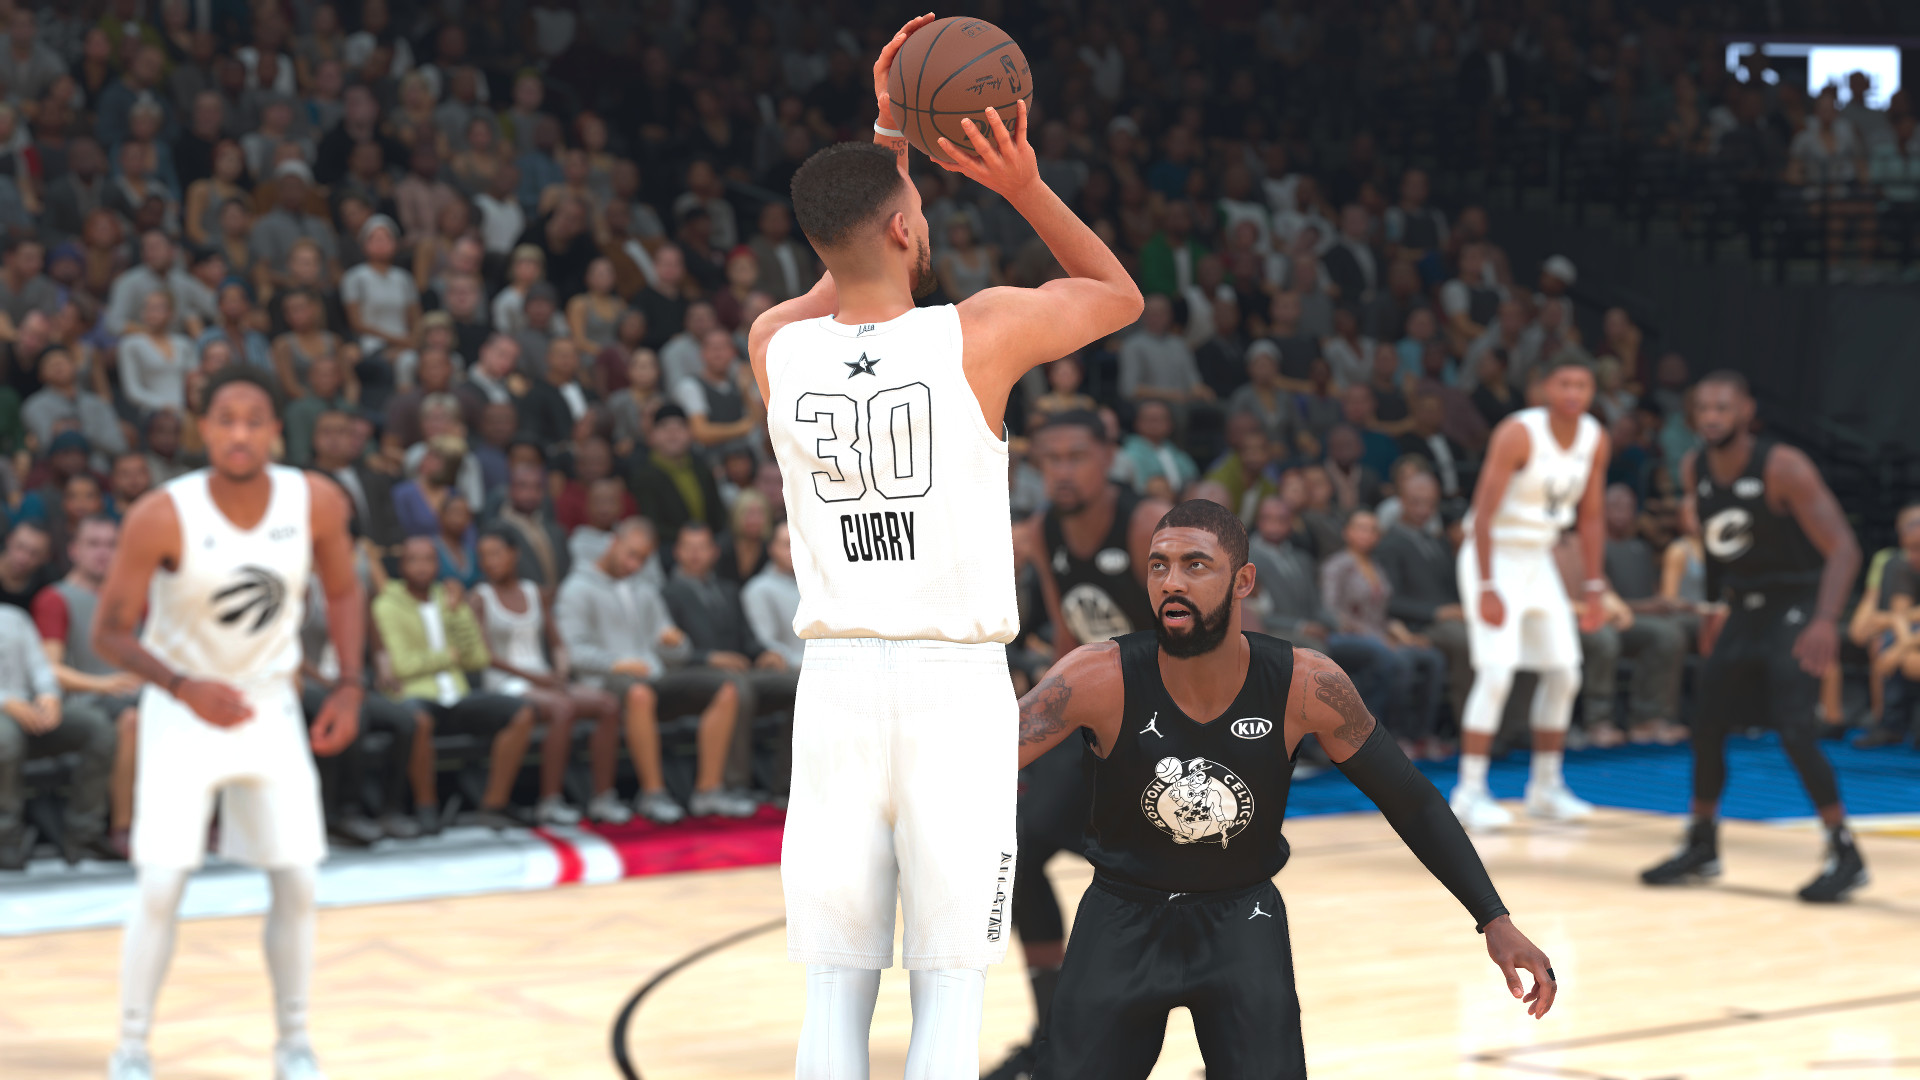 All-Star teams, jerseys, and court have all been added to NBA 2K18